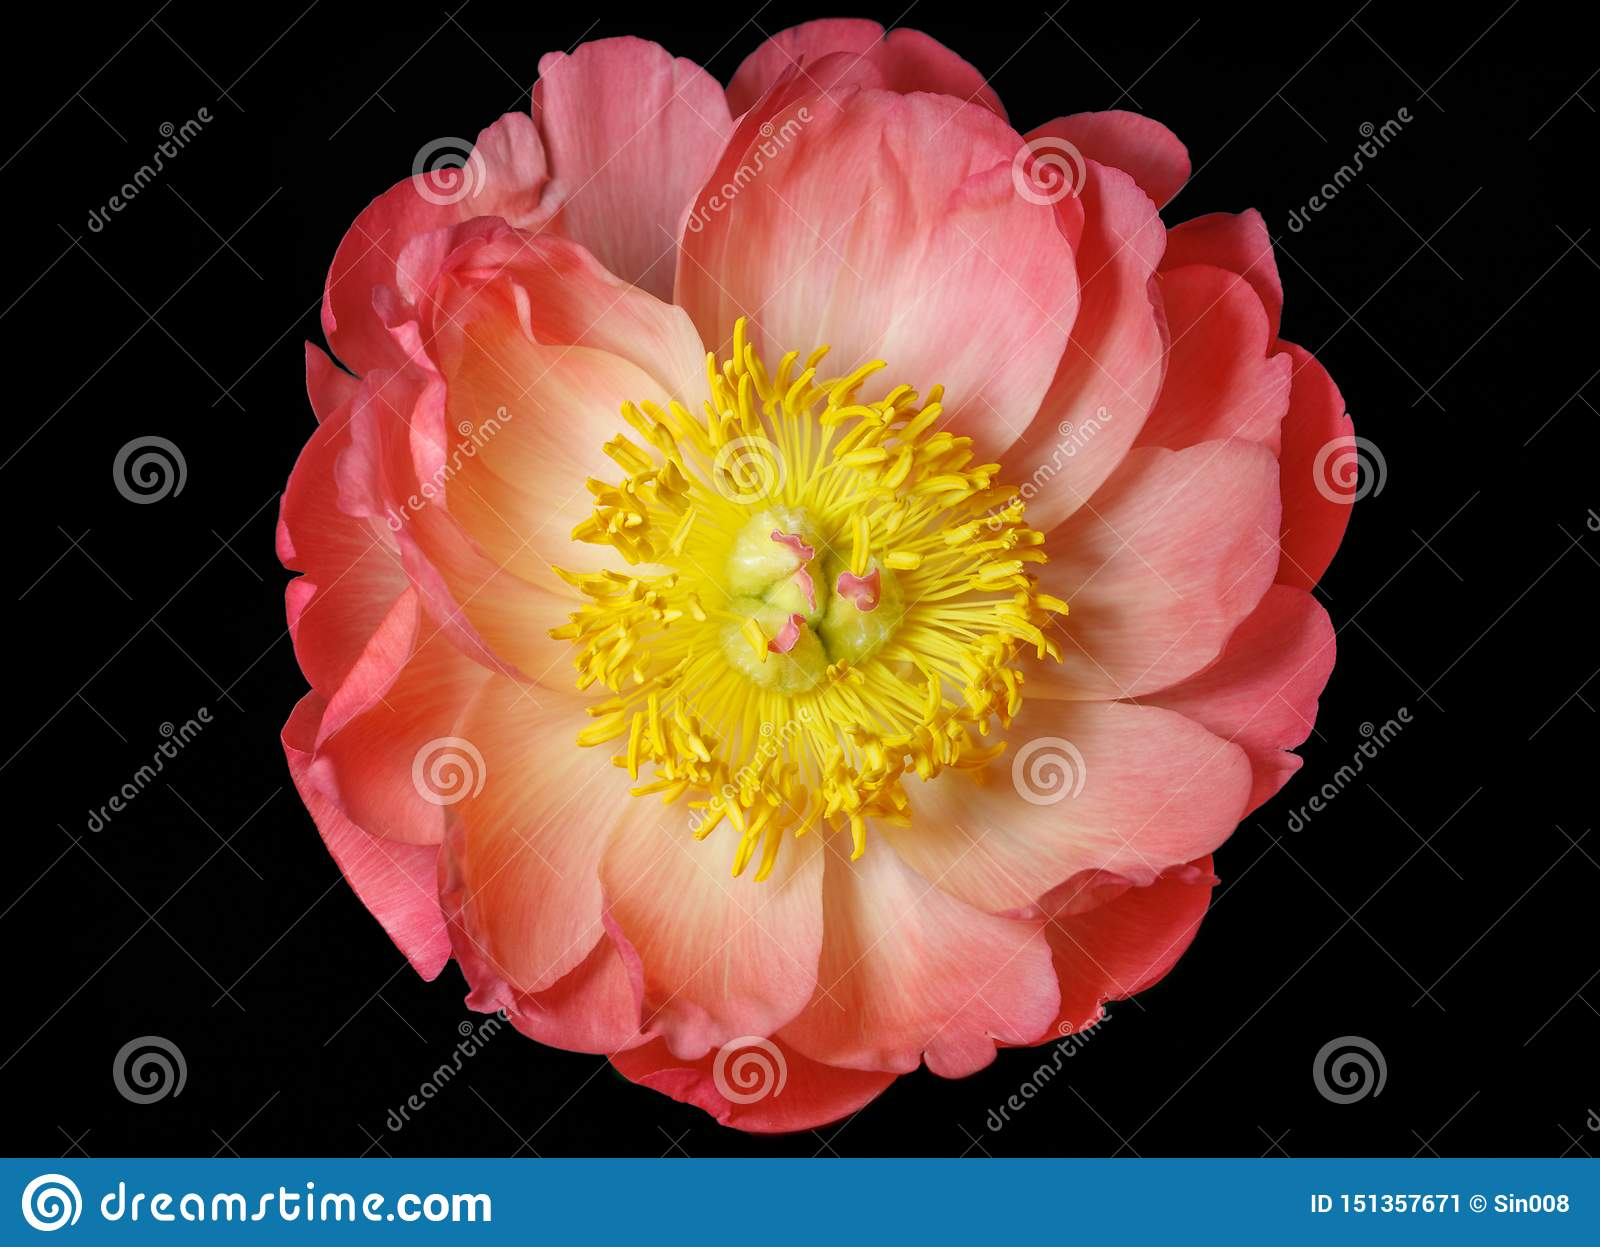 Pink peony close up isolated on black background, top view. Beautiful delicate peony with pink petals and yellow middle